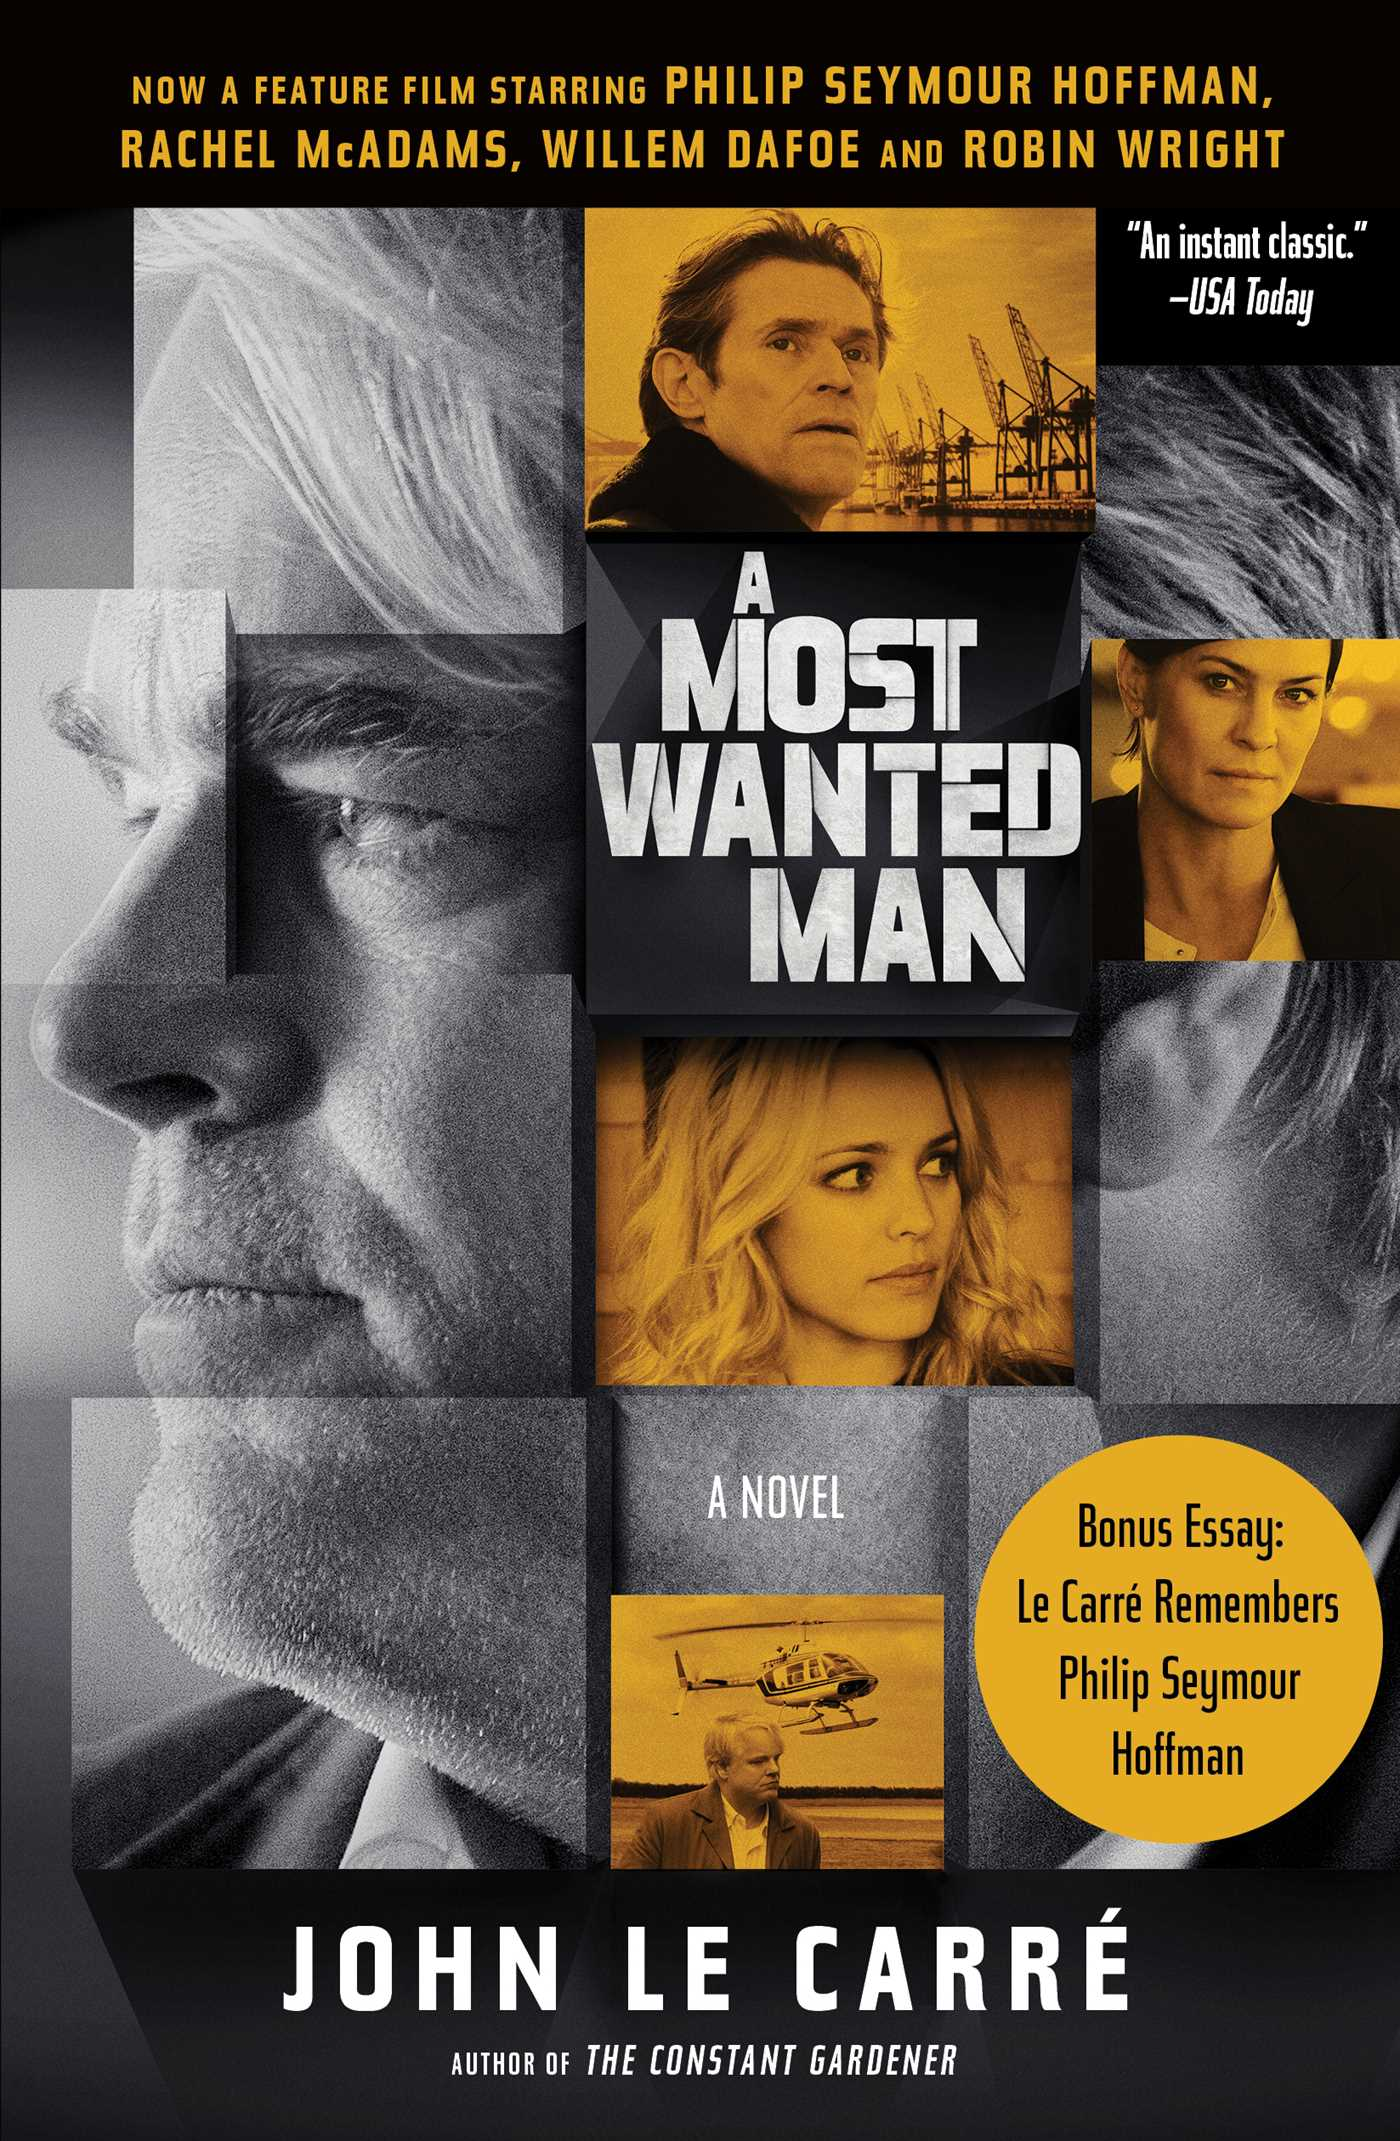 john le carre official publisher page simon schuster book cover image jpg a most wanted man